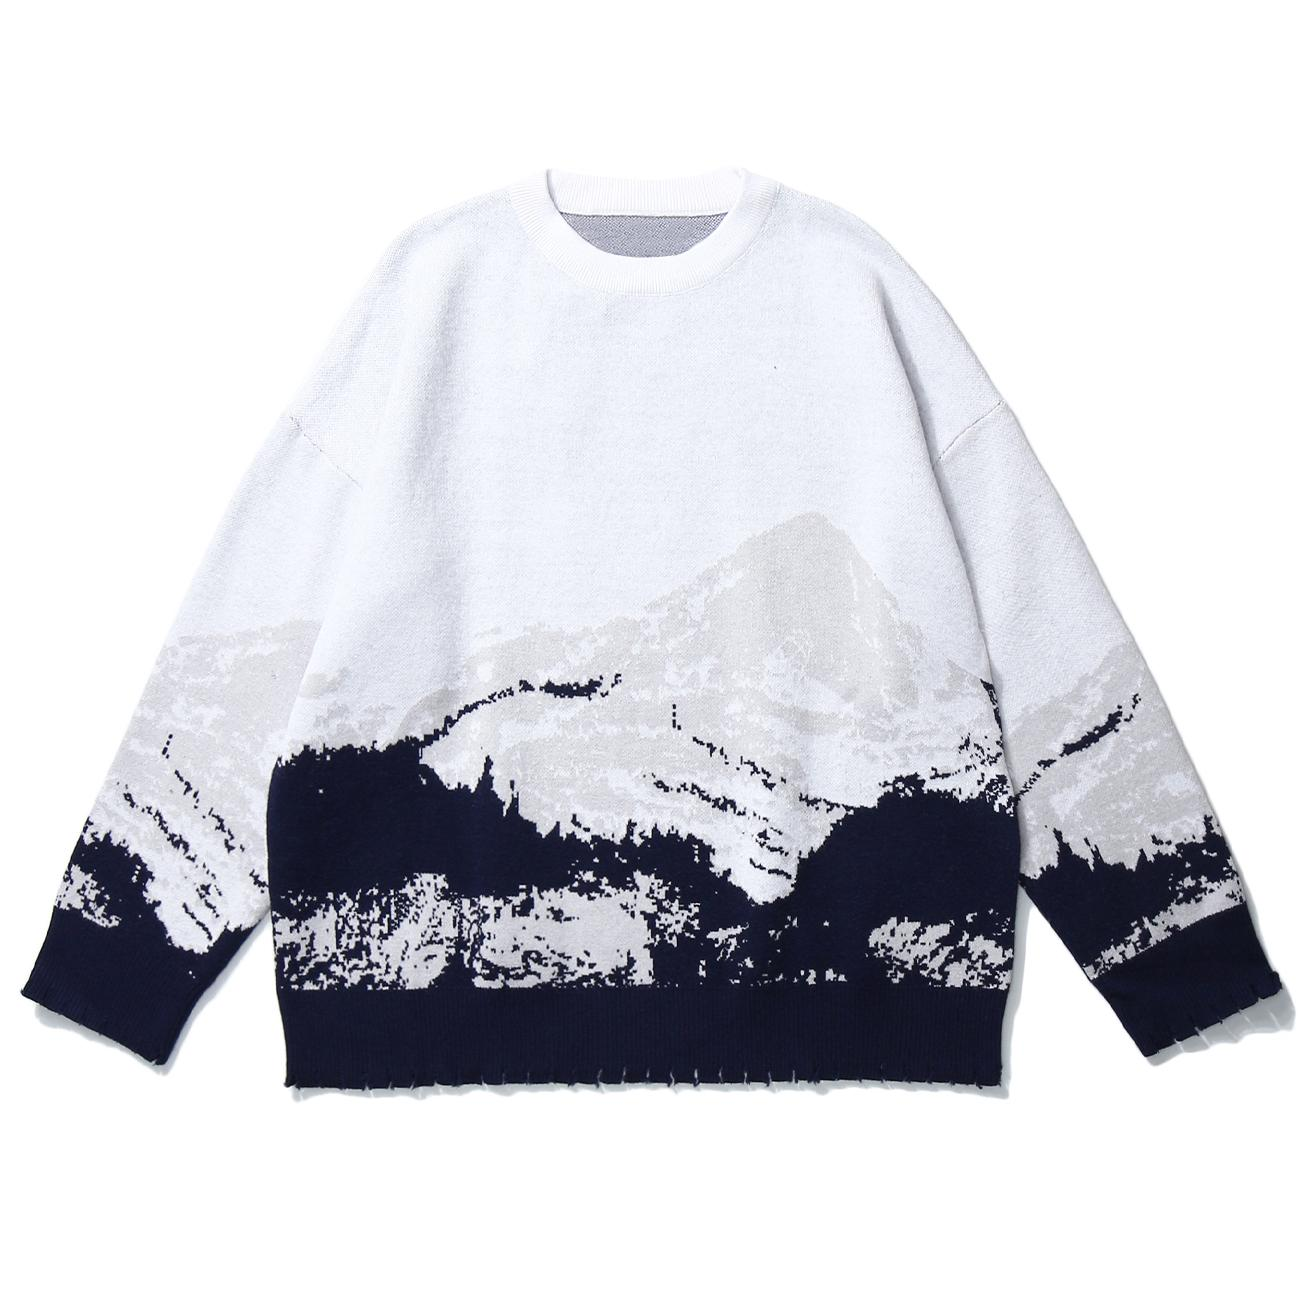 Snow Mountain Men Knitted Sweater Harajuku Men Clothing Hip Hop Pullover Men Streetwear Sweater Oversize Loose Knitwear 201221